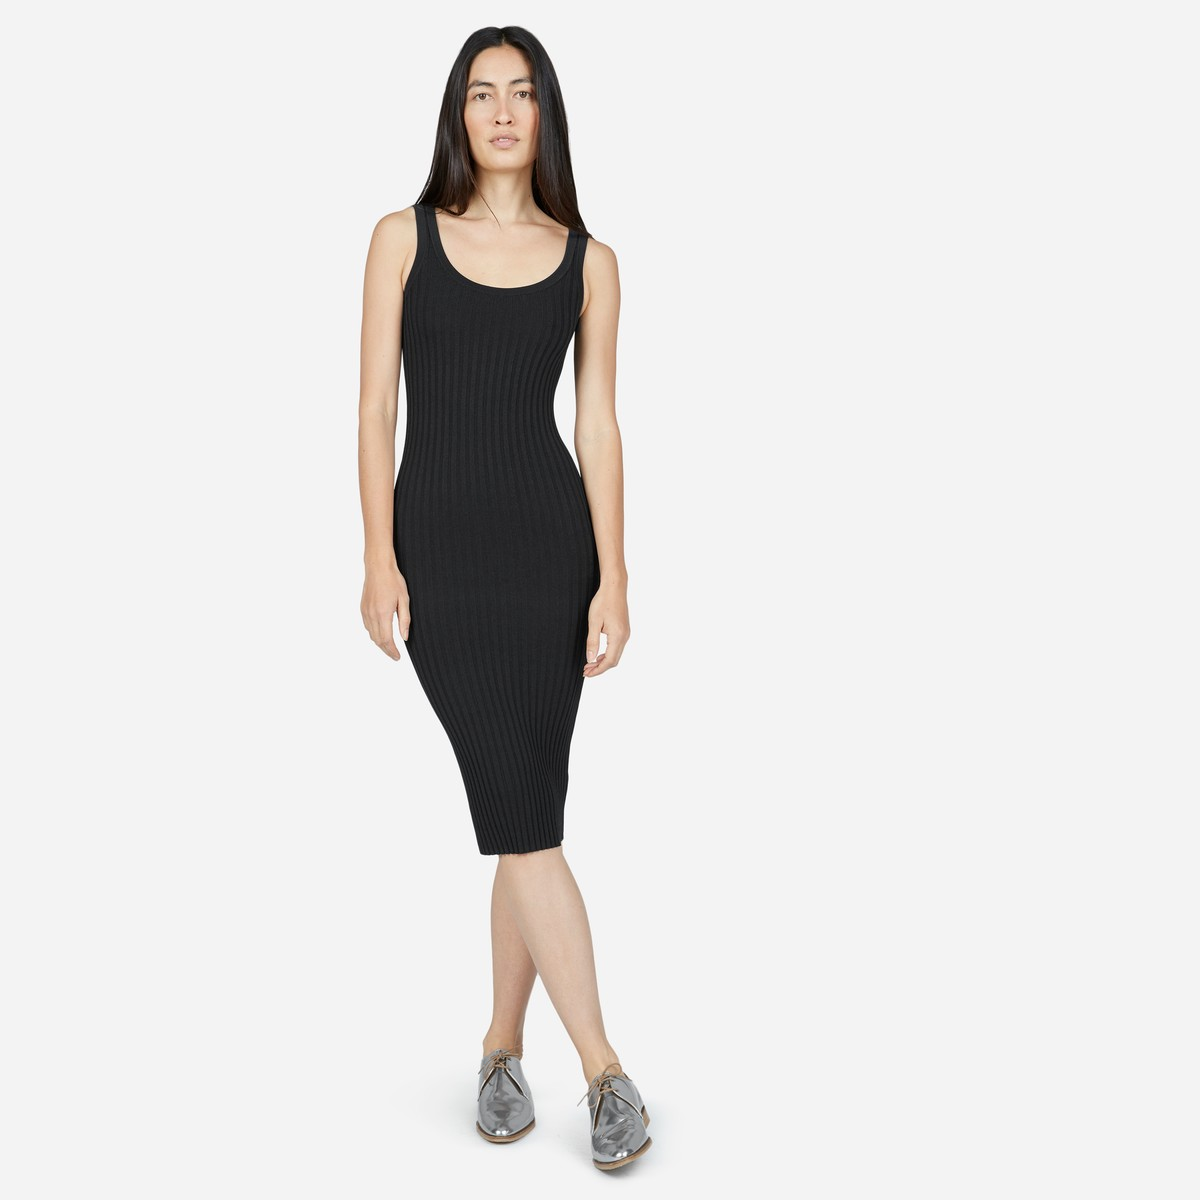 This tank dress from Everlane will show off your figure and easily transition into a variety of looks.  Cost: $98 USD